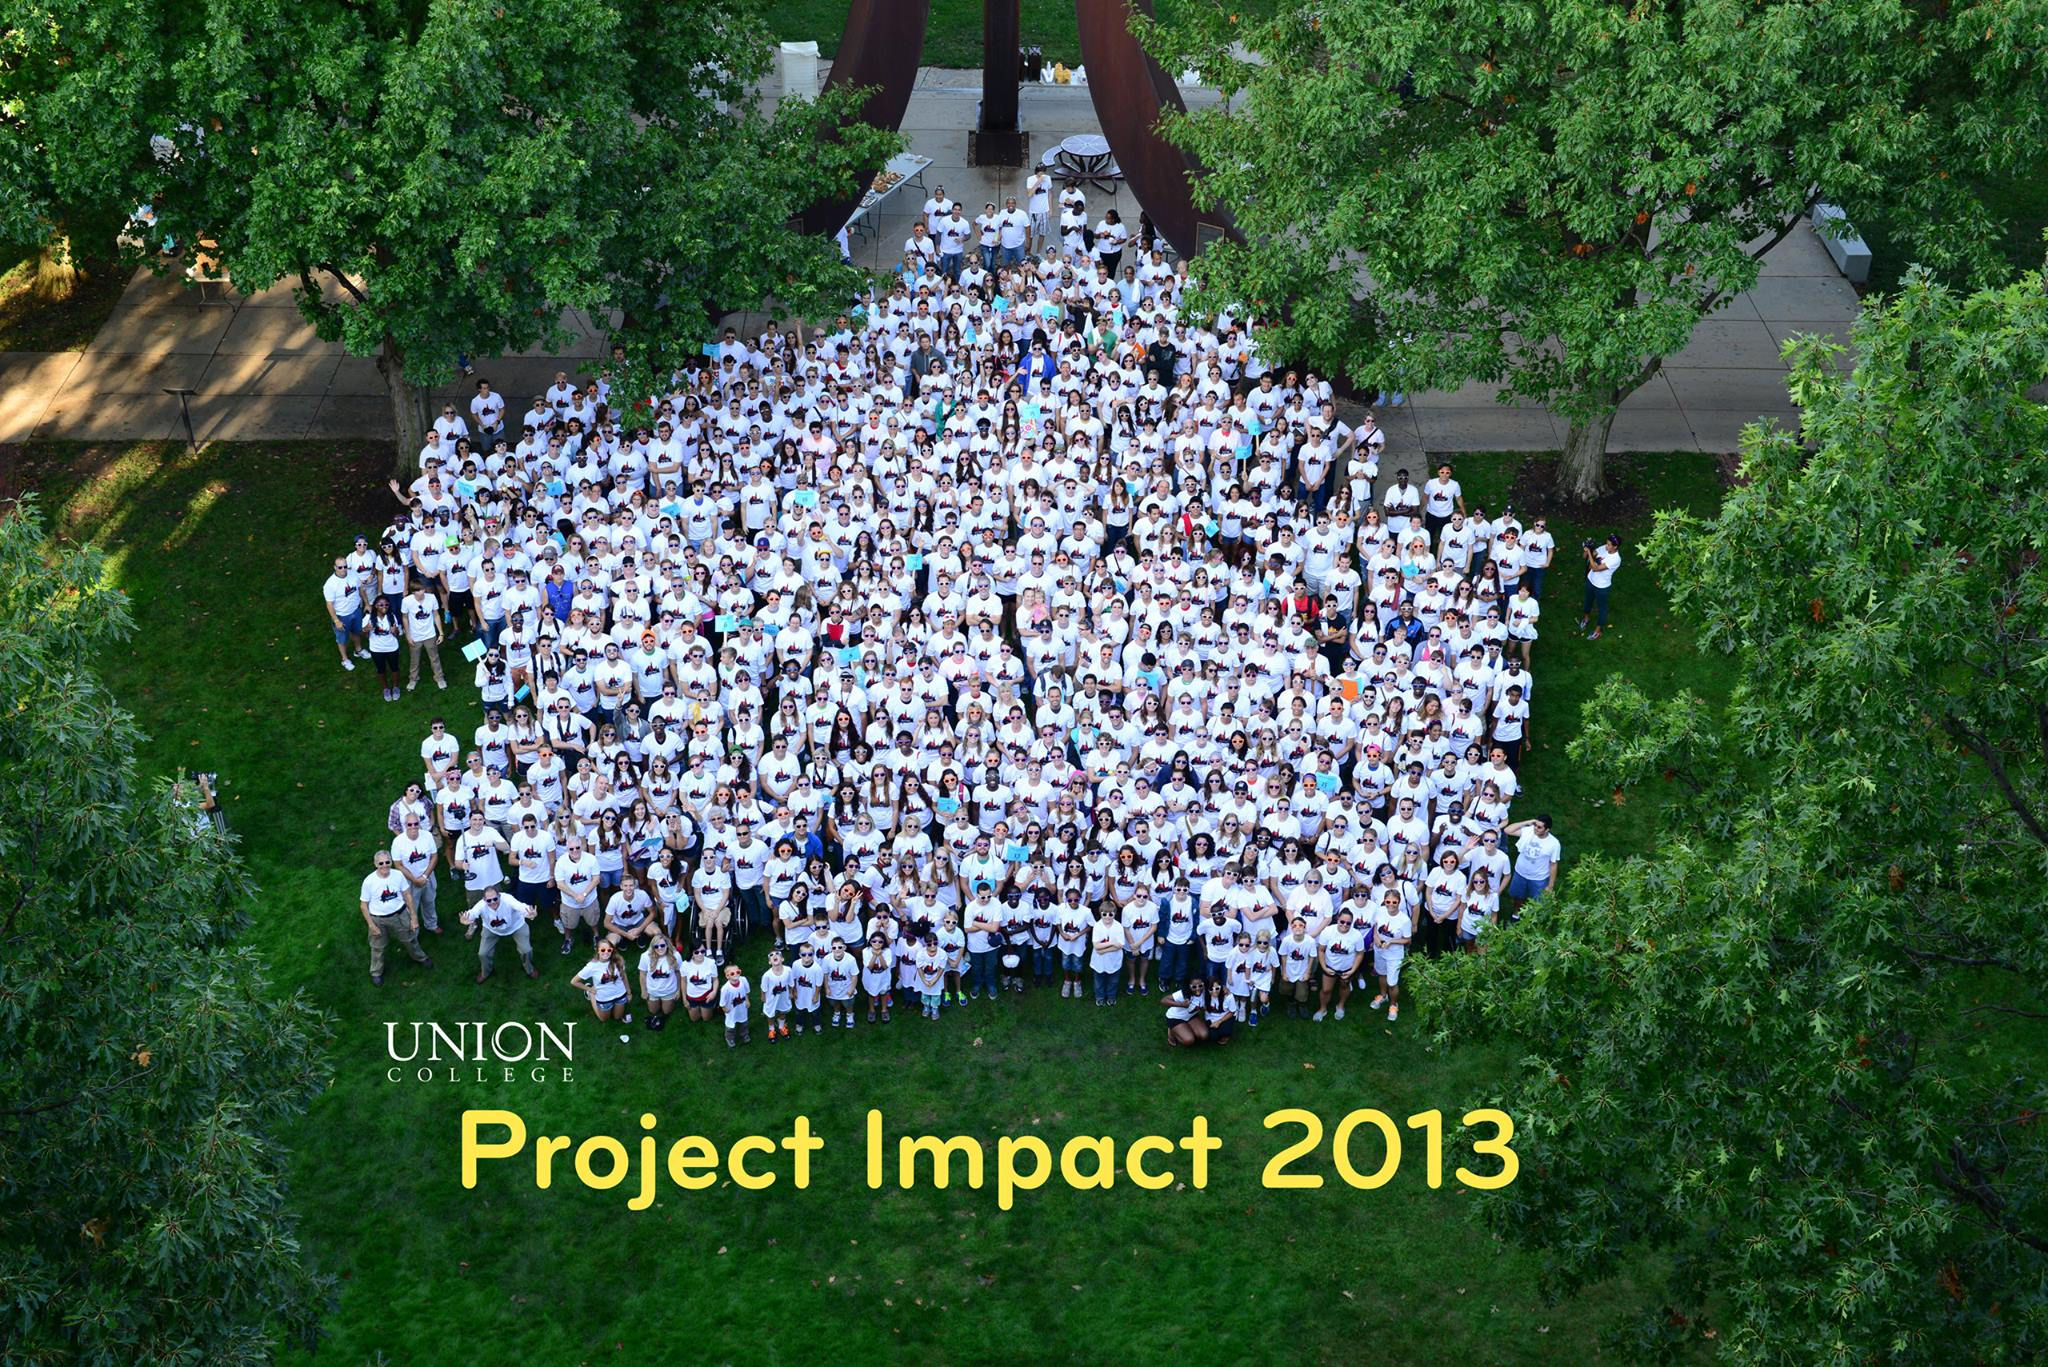 Project Impact - a community service day for Union College | The Kardia Blog